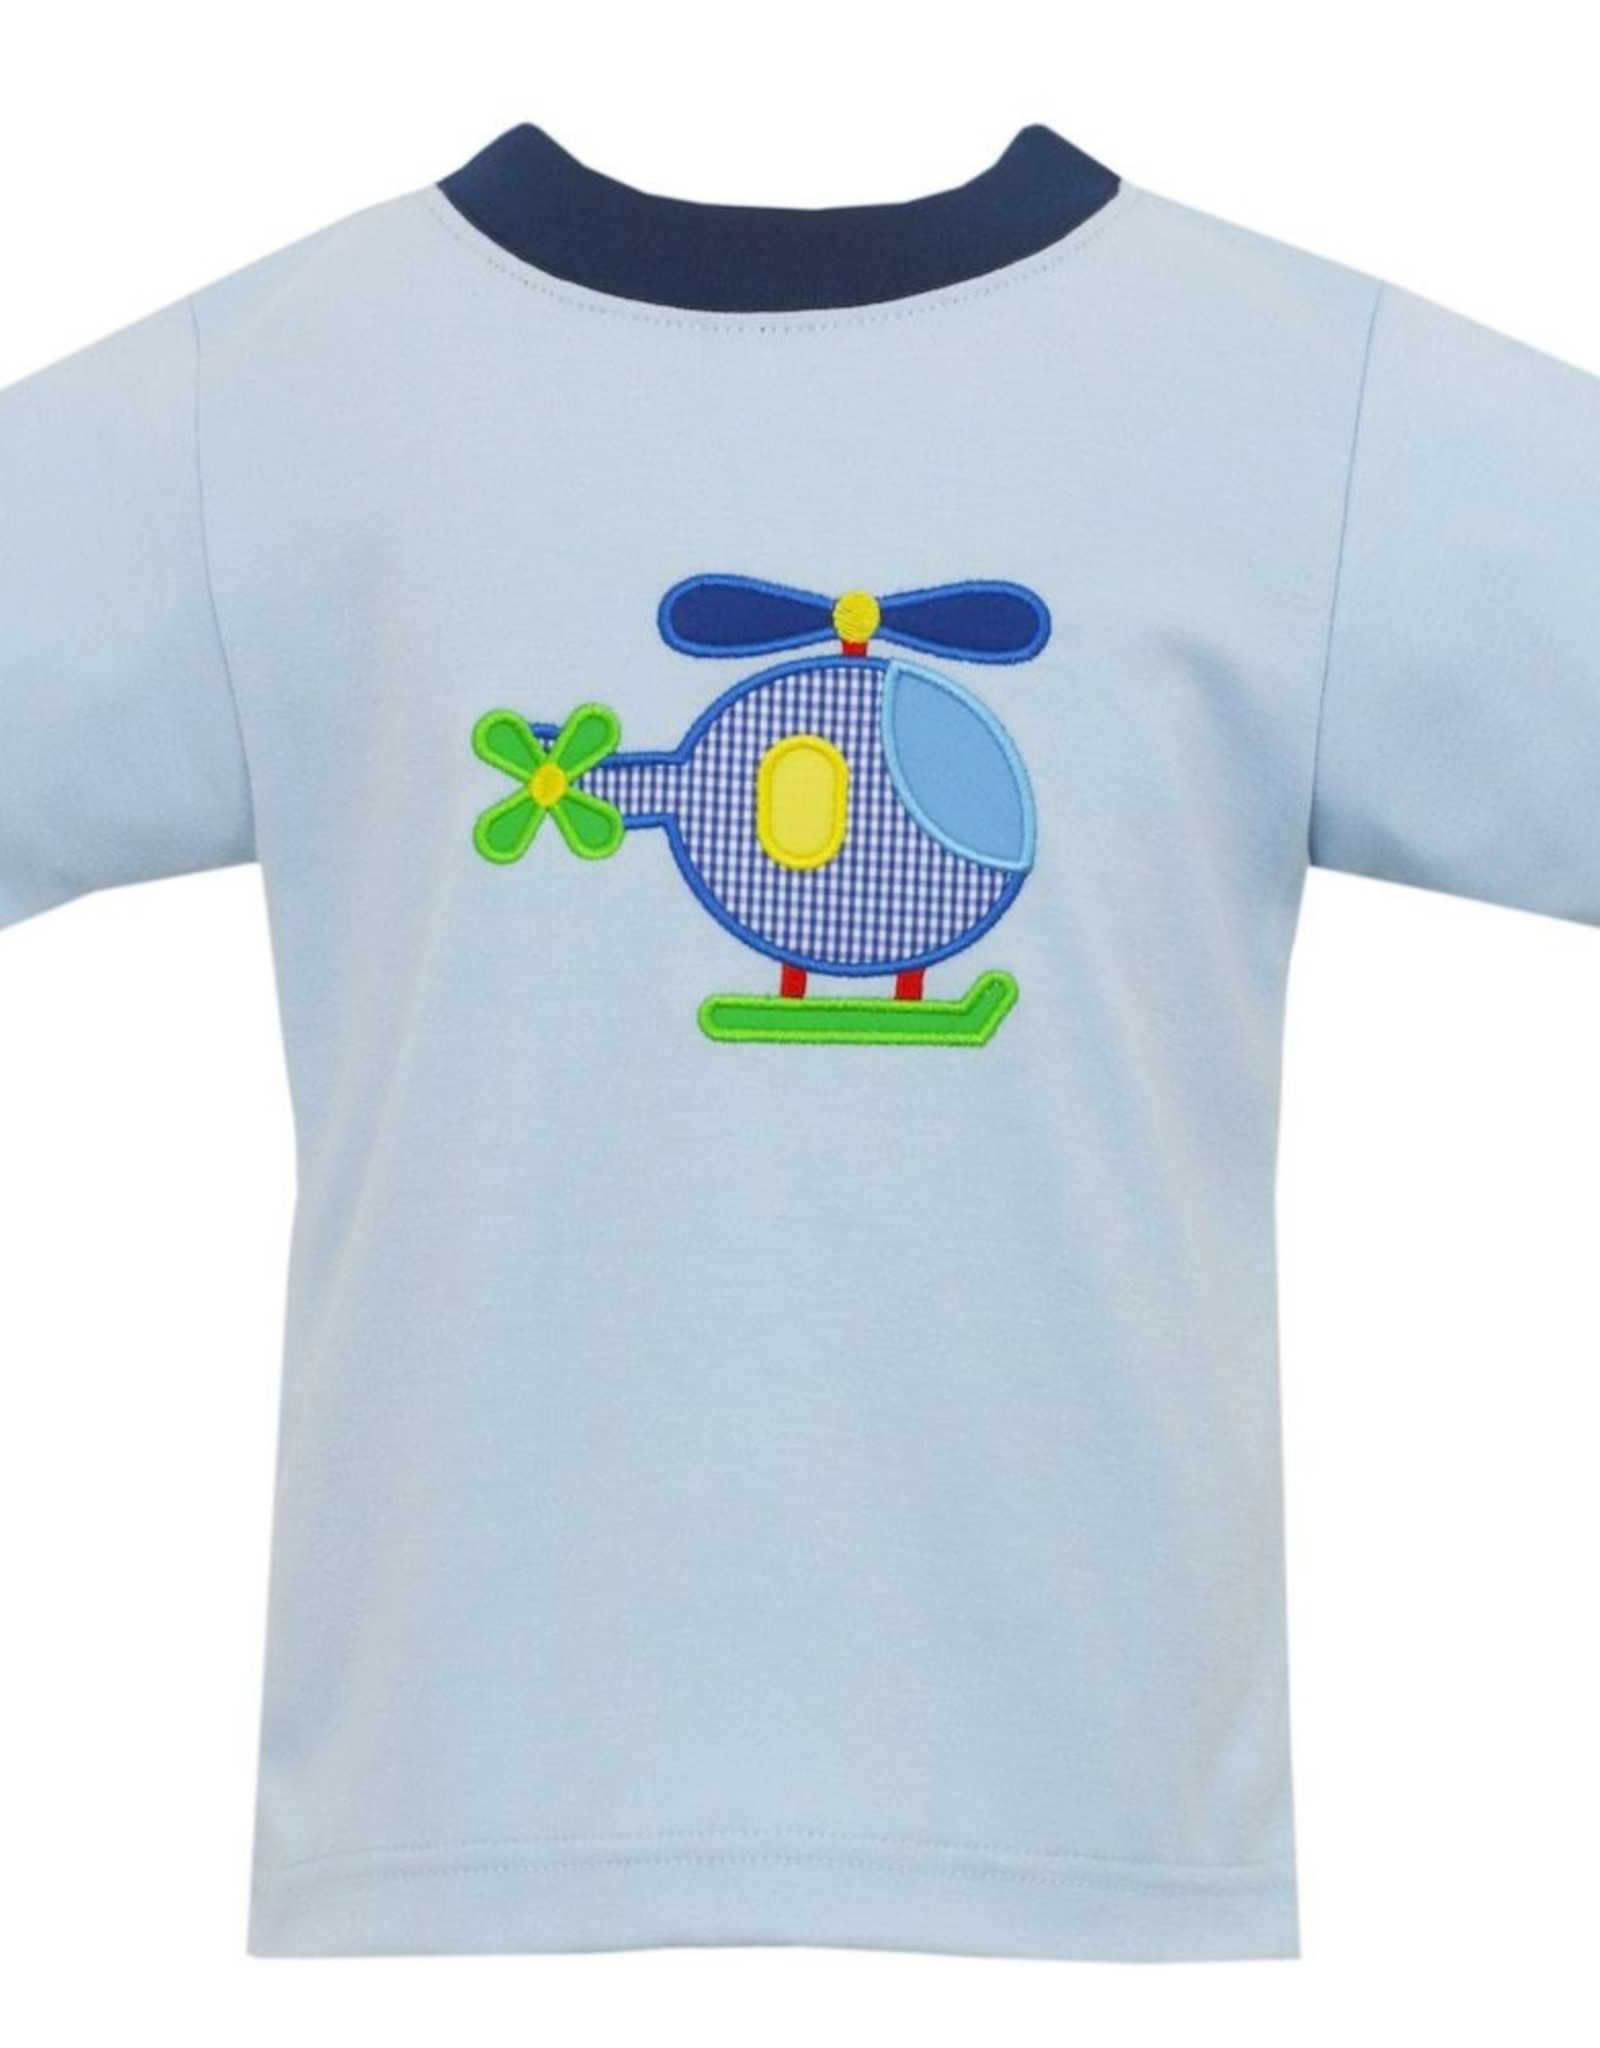 Claire and Charlie Helicopter Applique Shirt Lt Blue